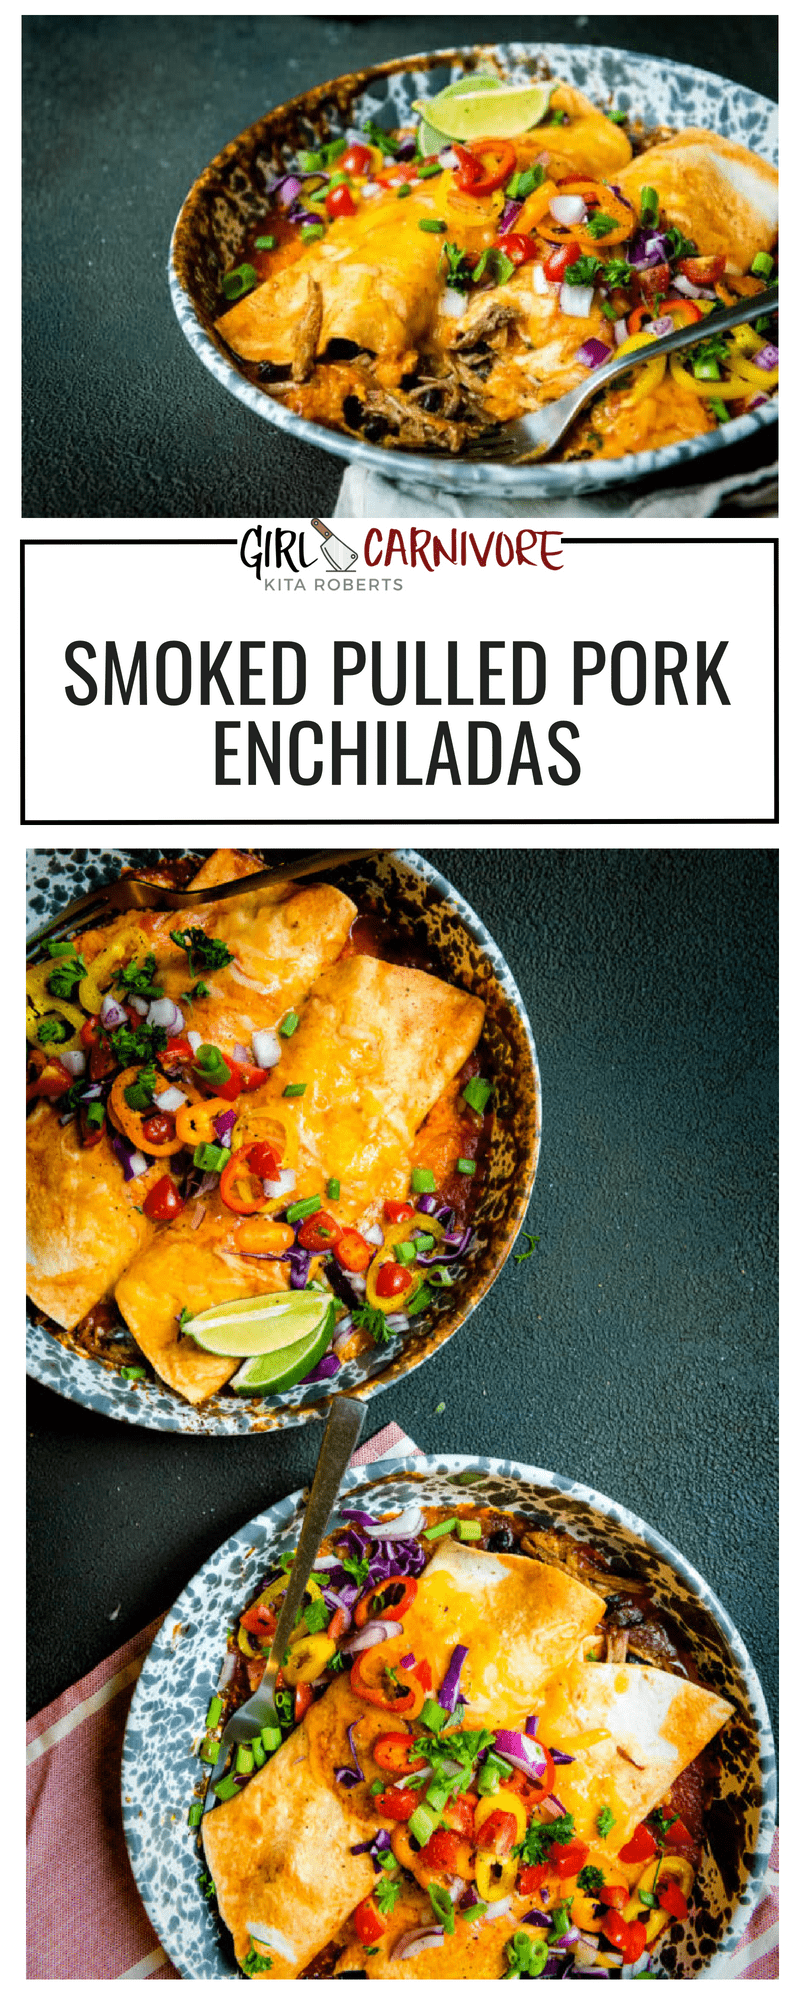 Smoked Pulled Pork Enchiladas are a fast and easy go to that are a great way to use up leftovers! Mix and match flavors and heat for your family's tastes. #recipe